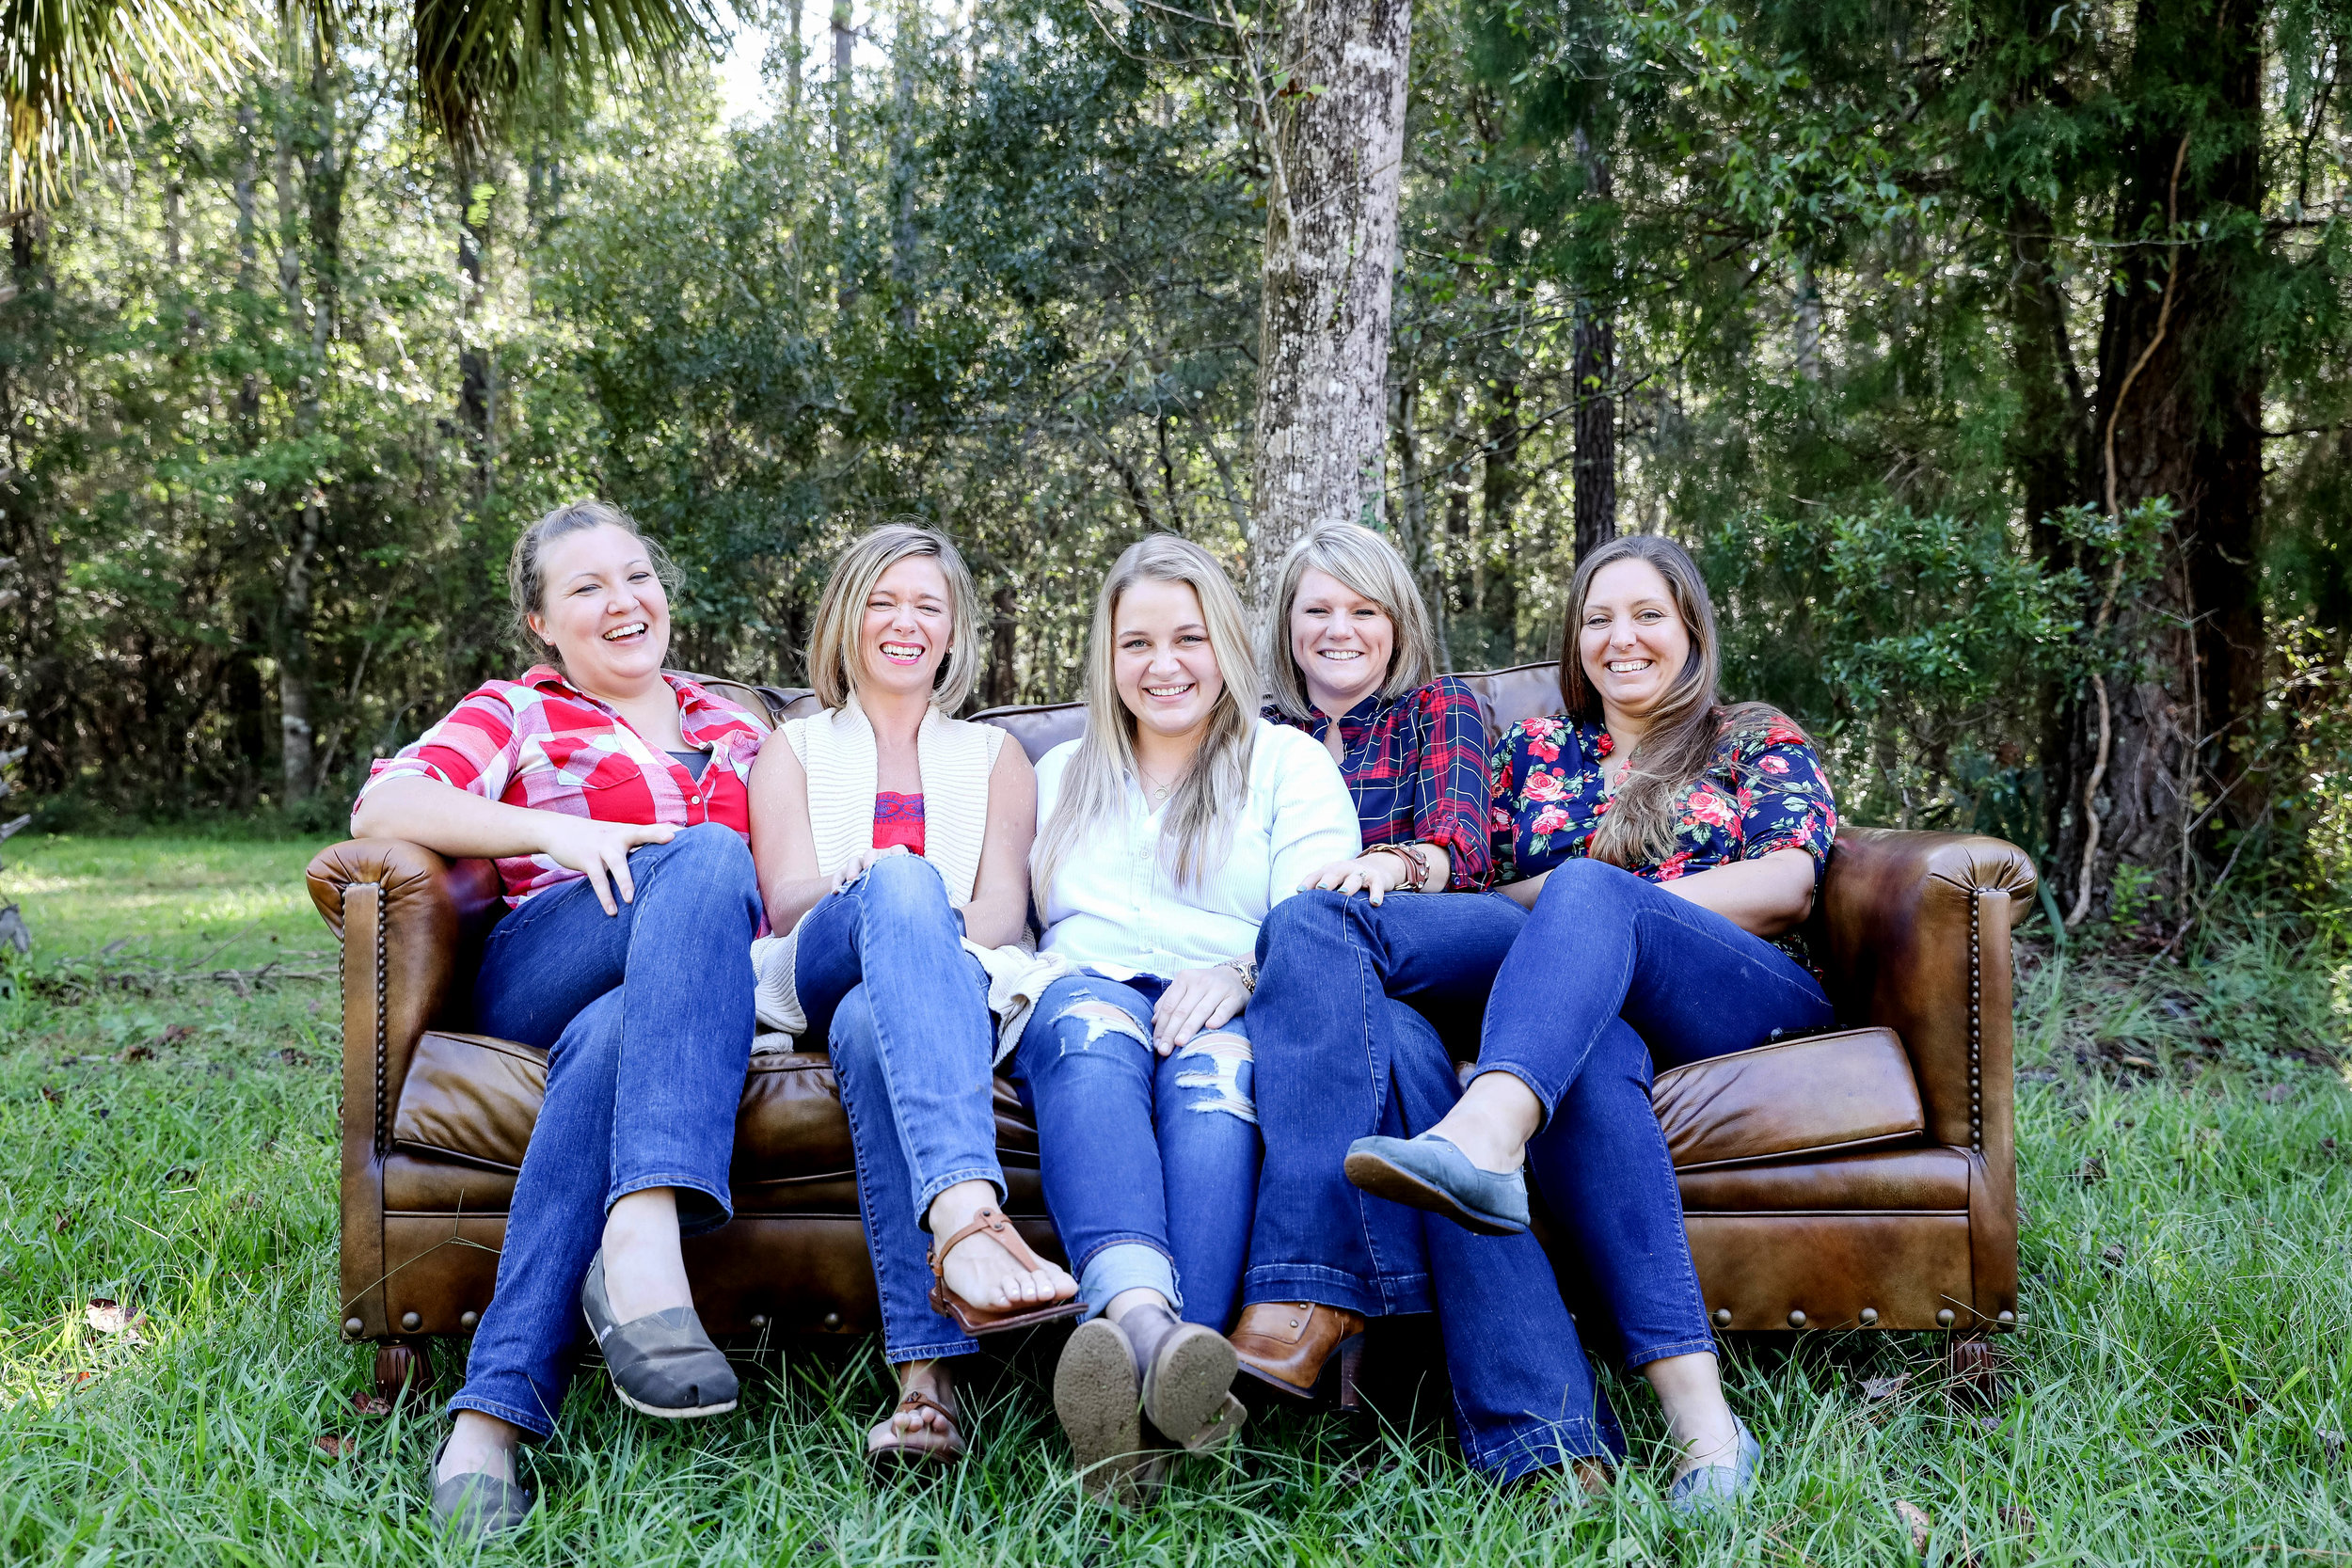 The girls of Southern Priss sit on a couch and laugh together in a field.